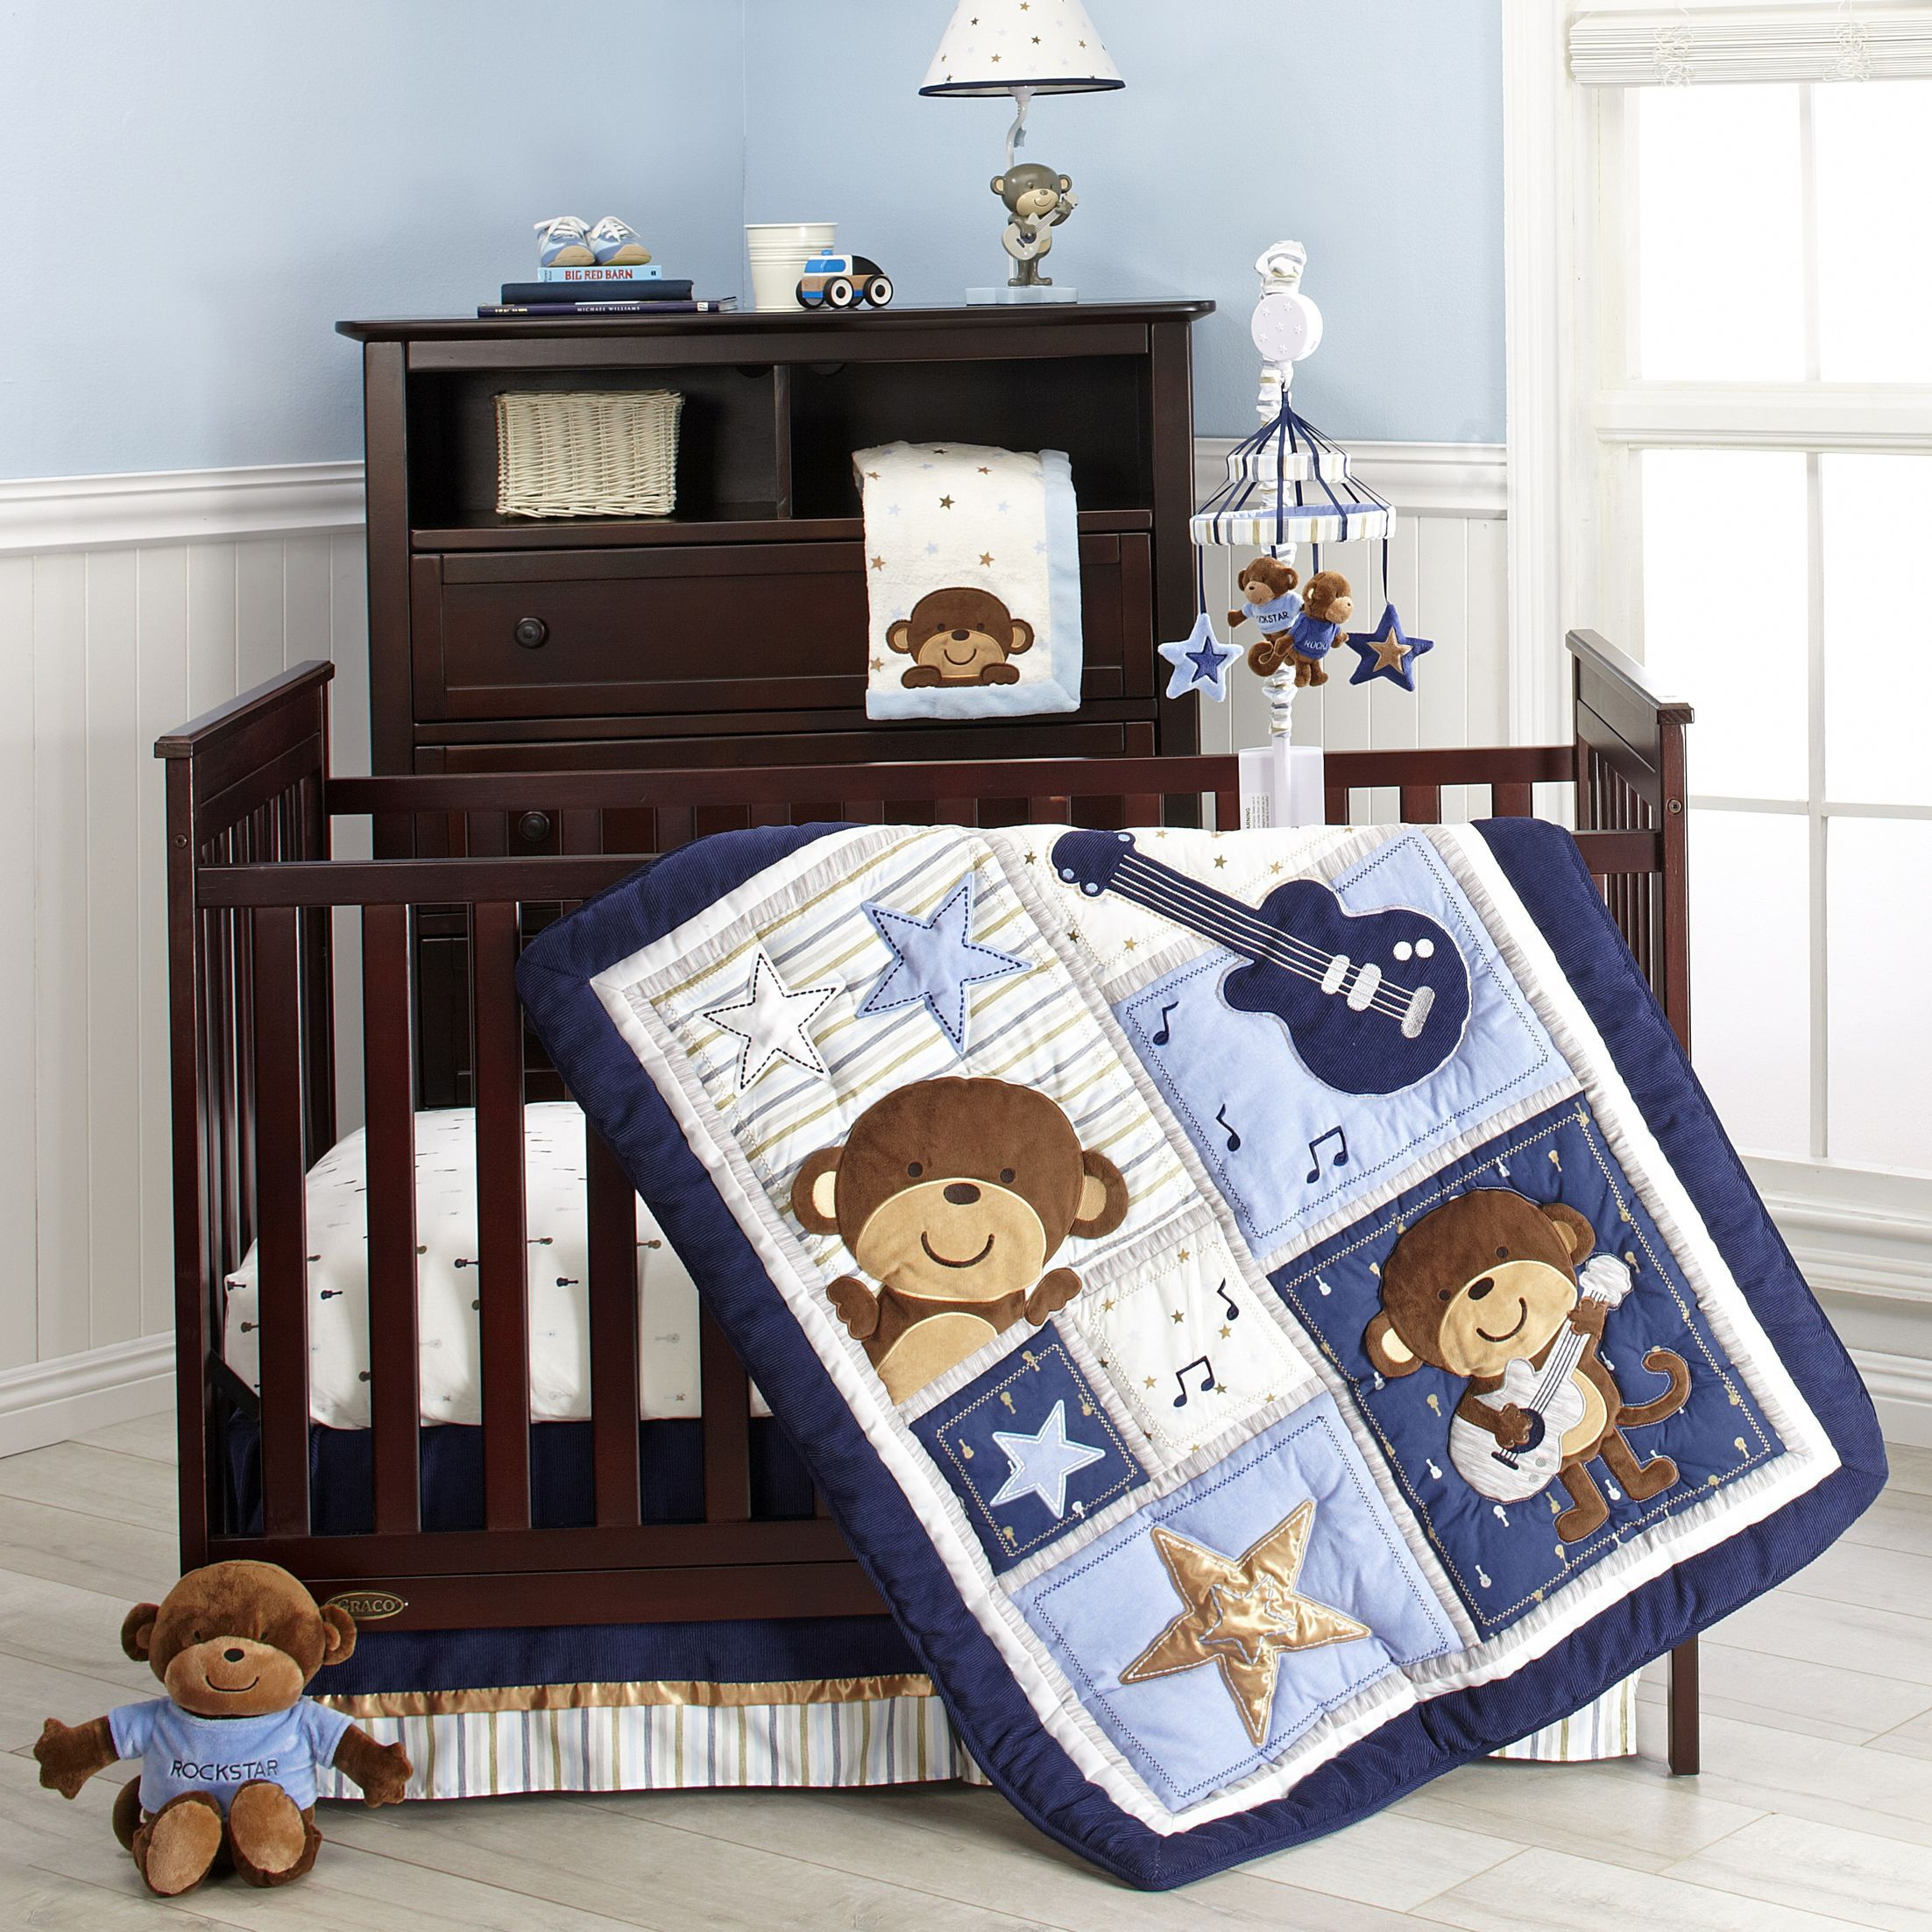 Monkey Crib Bedding Set Mary S Baby Shower Pinterest Crib